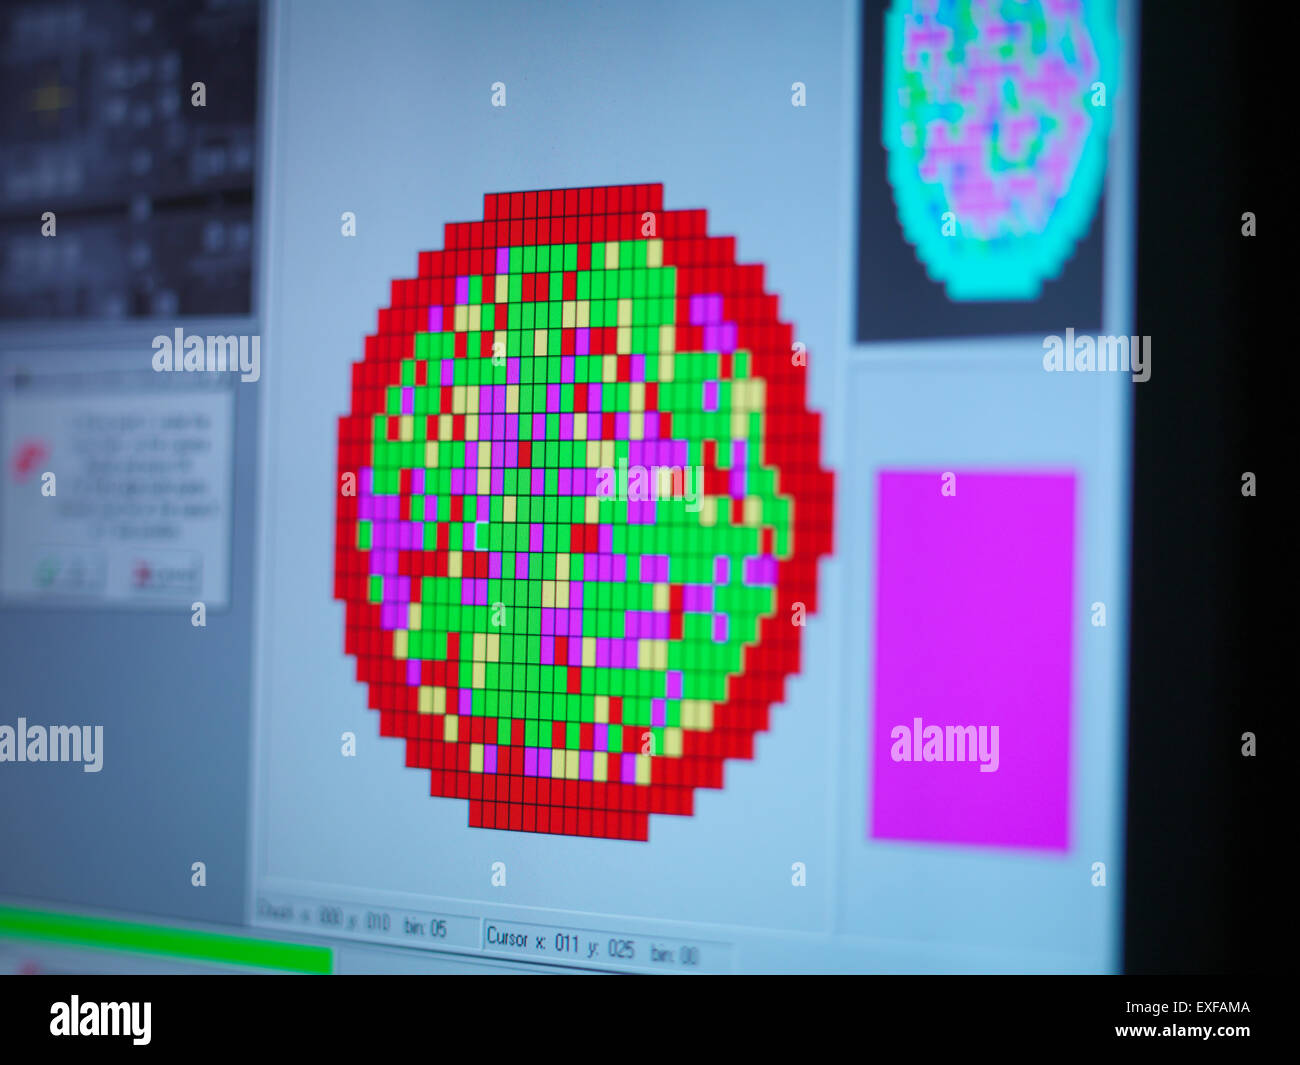 Integrated Circuit Wafer Mapping Not Lossing Wiring Diagram Circuits Design Silicon Stock Photos Images Alamy Rh Com Microchip Rfid